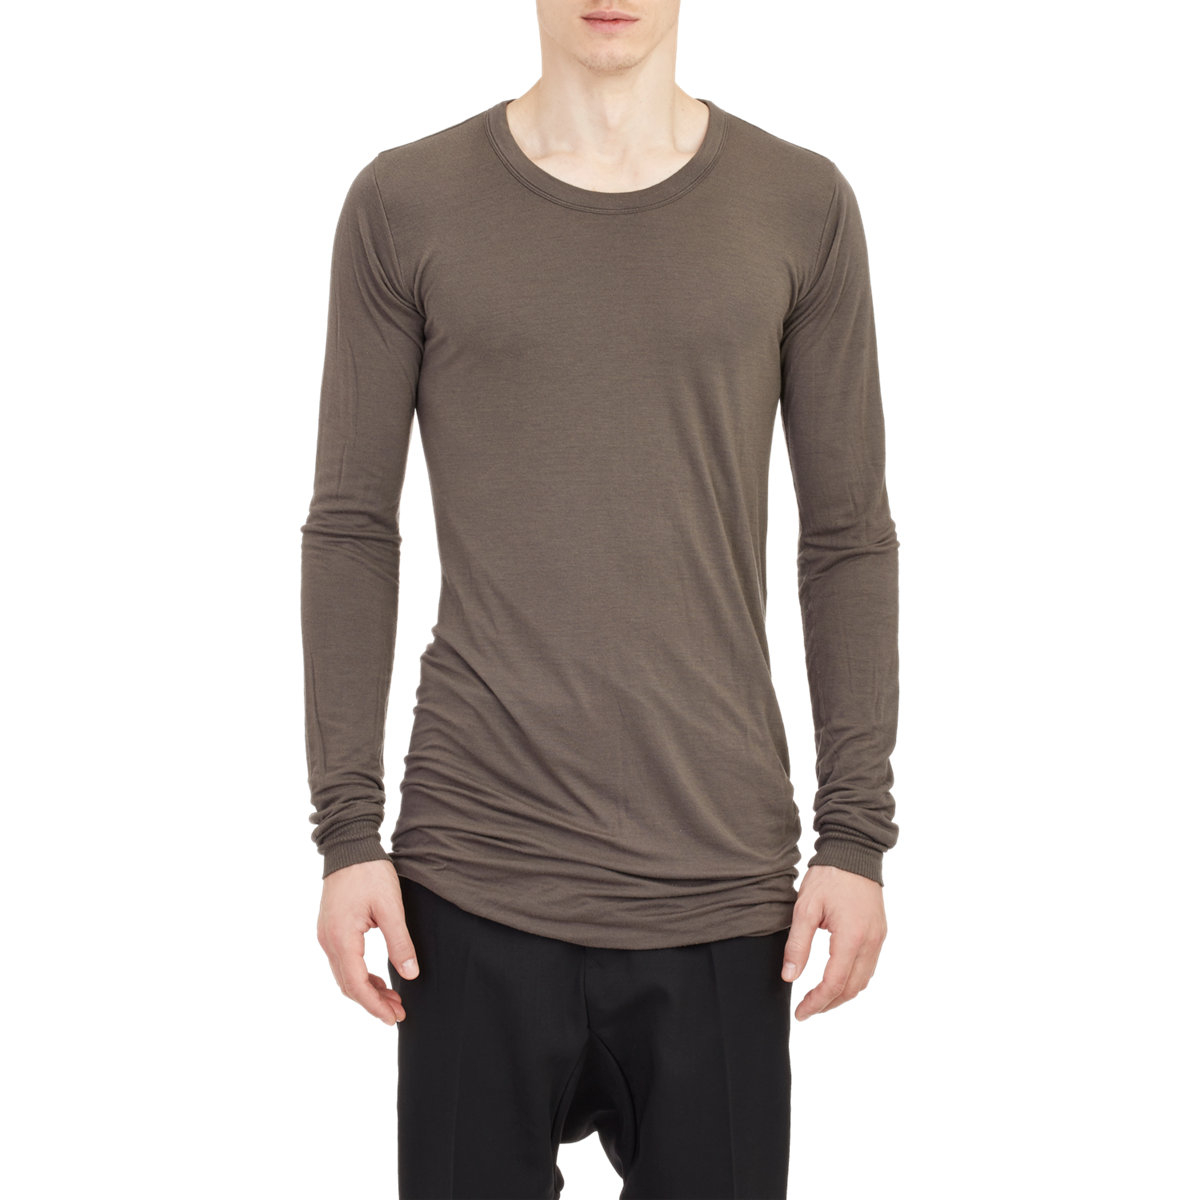 Mens Double-Layer Cotton Long-Sleeve T-Shirt Rick Owens For Sale Official Site Clearance Sast Outlet 100% Guaranteed Sale Reliable Outlet Original Y4JsUND7C